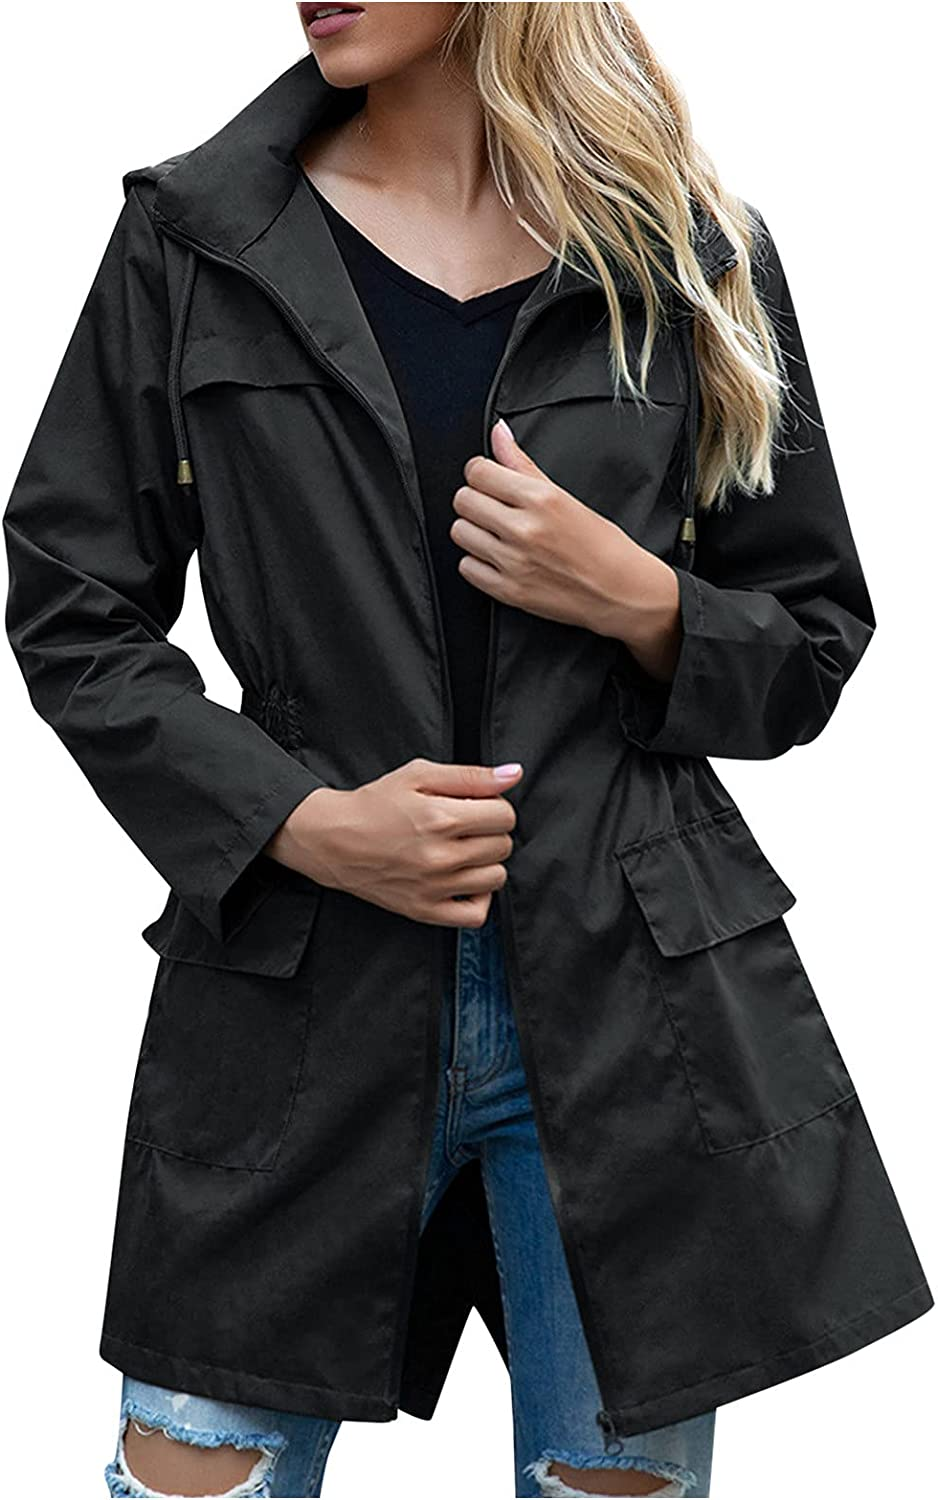 Womens Raincoats Waterproof OFFicial Cinch Waist Weather L Ranking TOP9 Breathable All